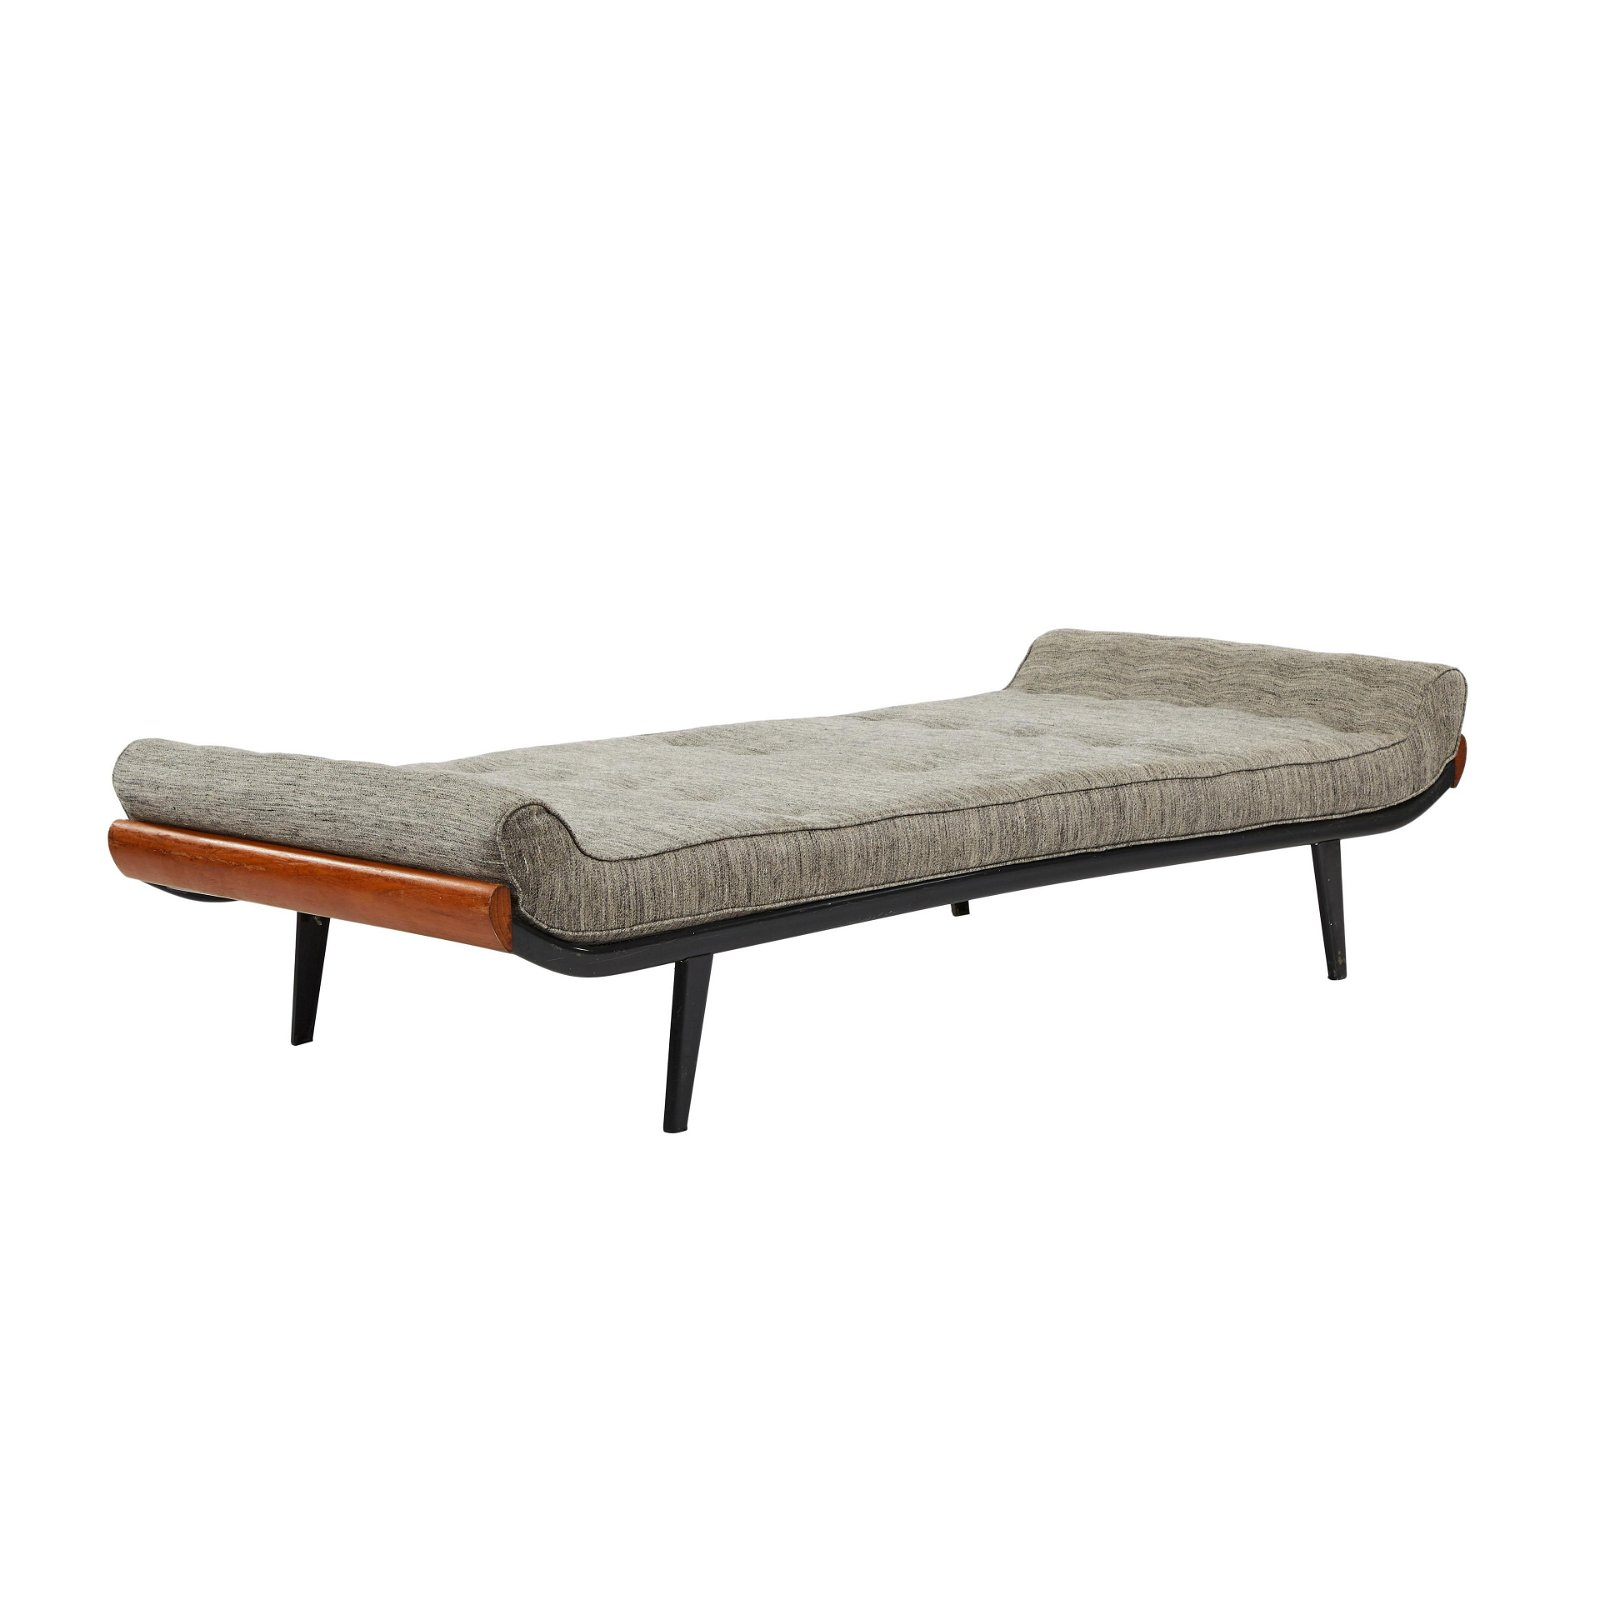 A.R. Cordemeijer Cleopatra Daybed